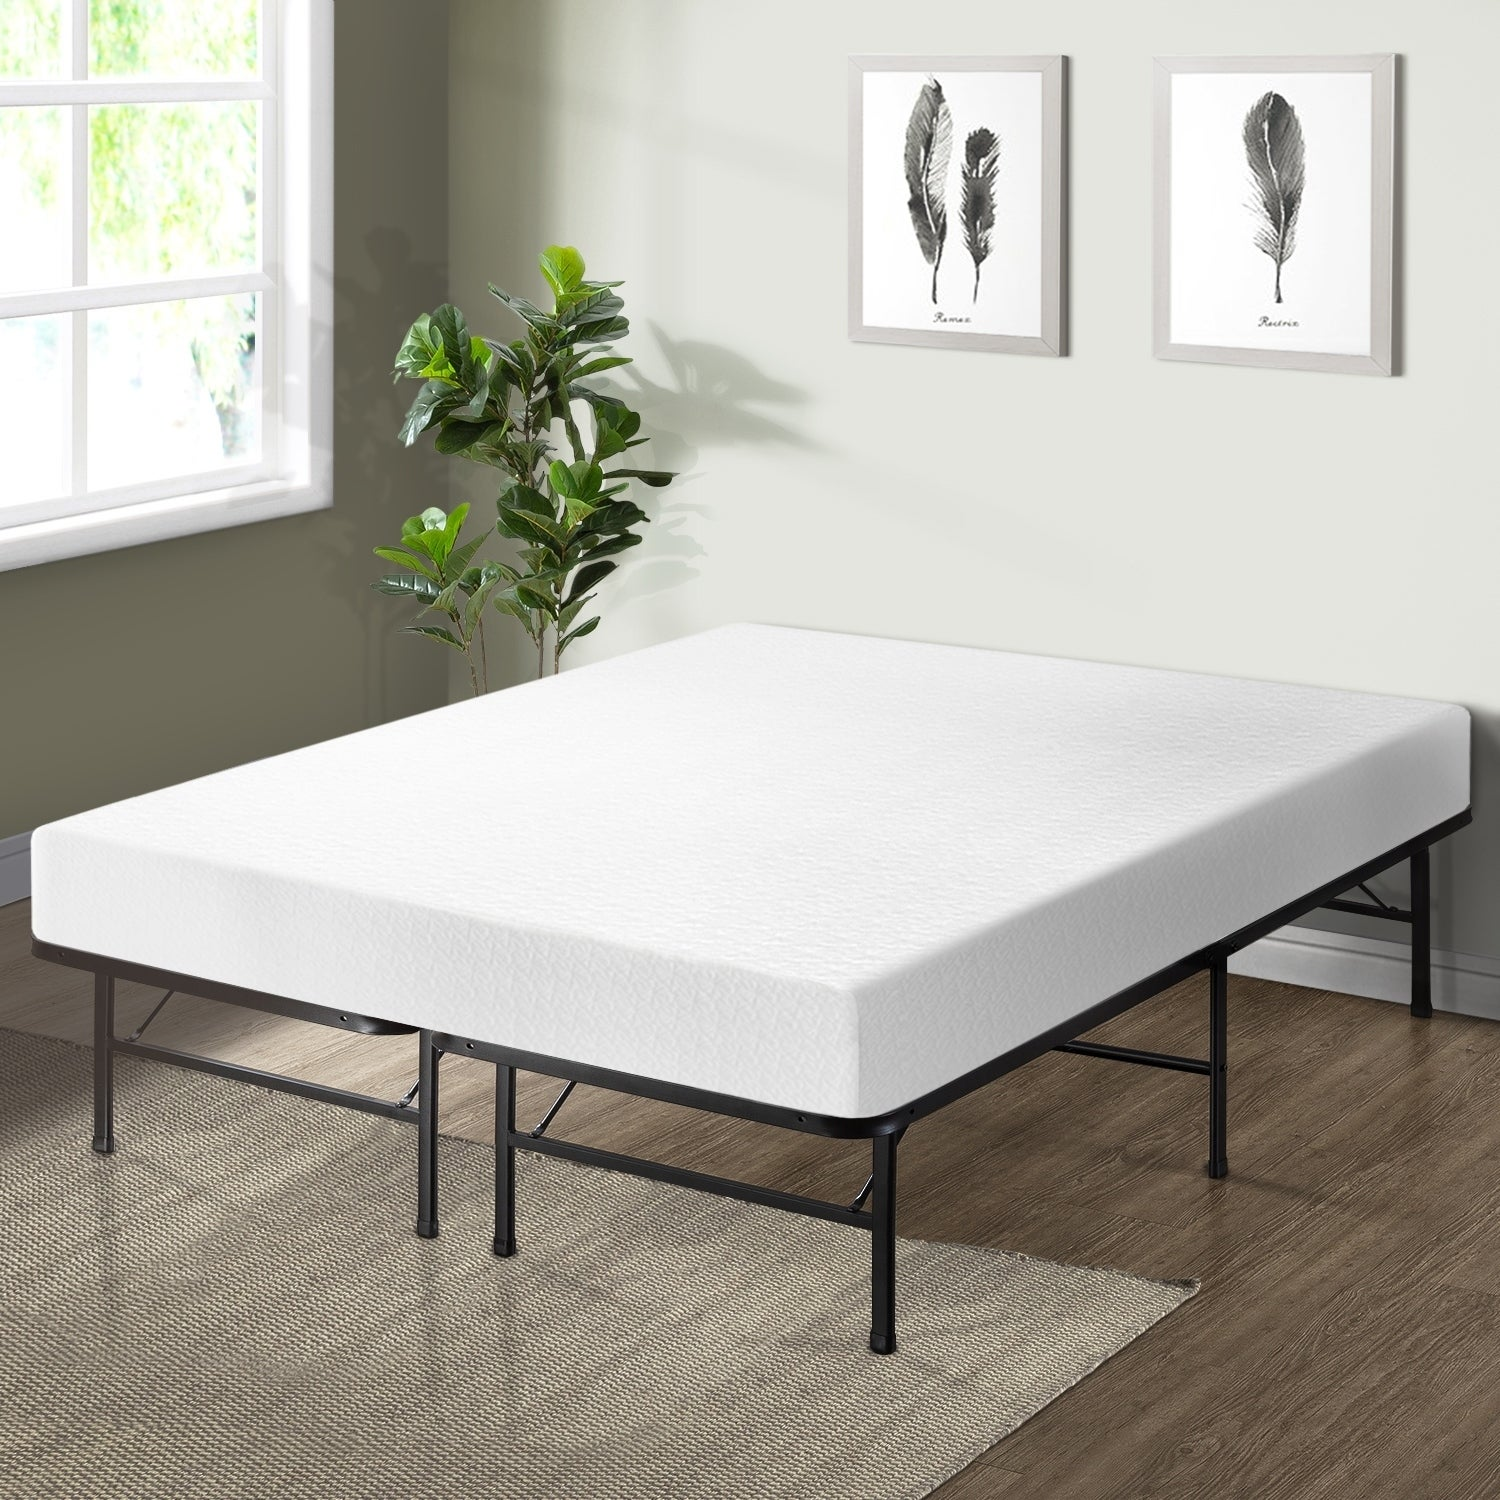 info for 6425b 552ca 8 Inch Memory Foam Mattress with Bed Frame Set - Crown Comfort